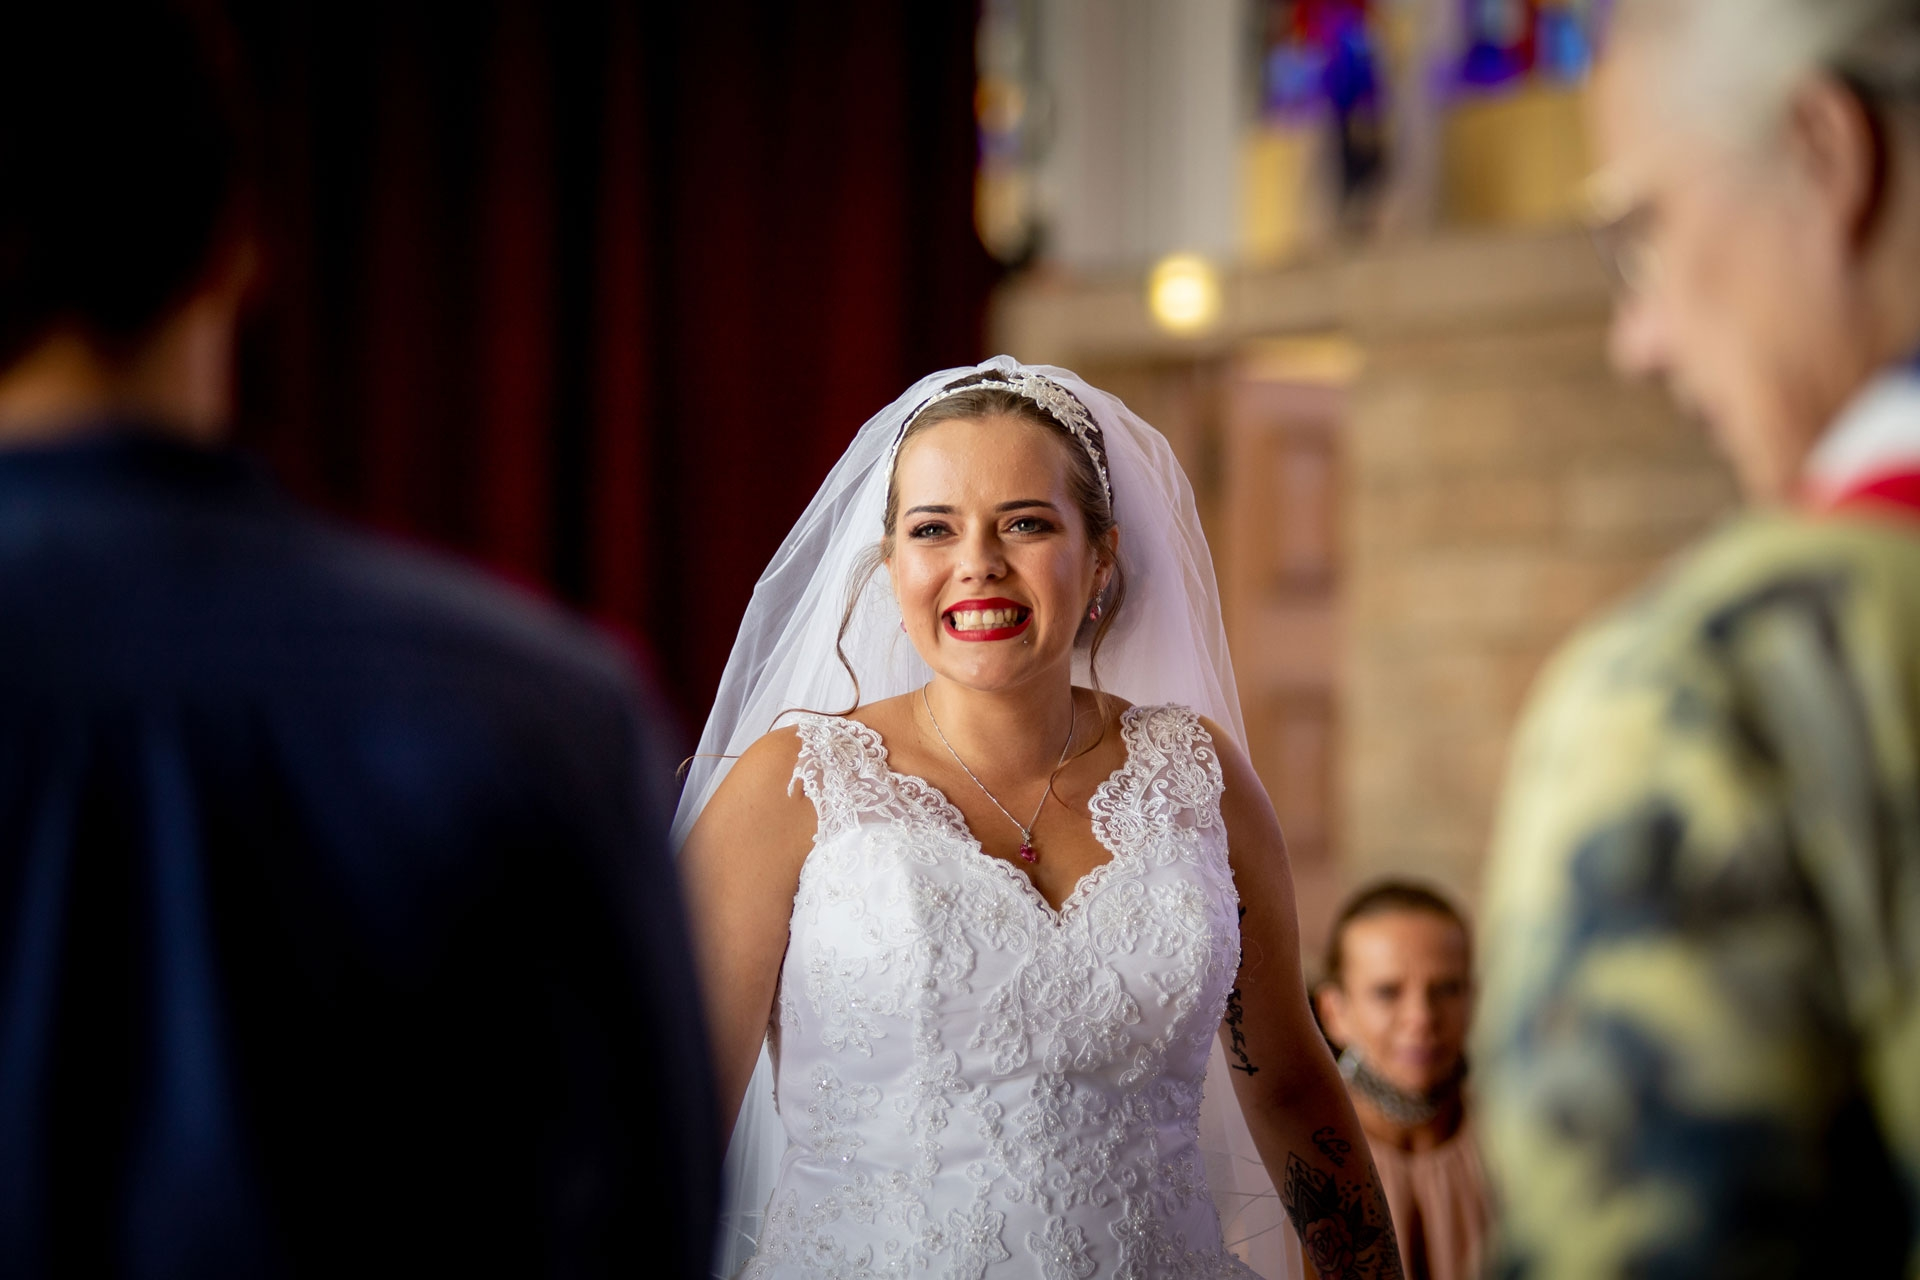 20200912-mariage-ophelie-alexandre-015